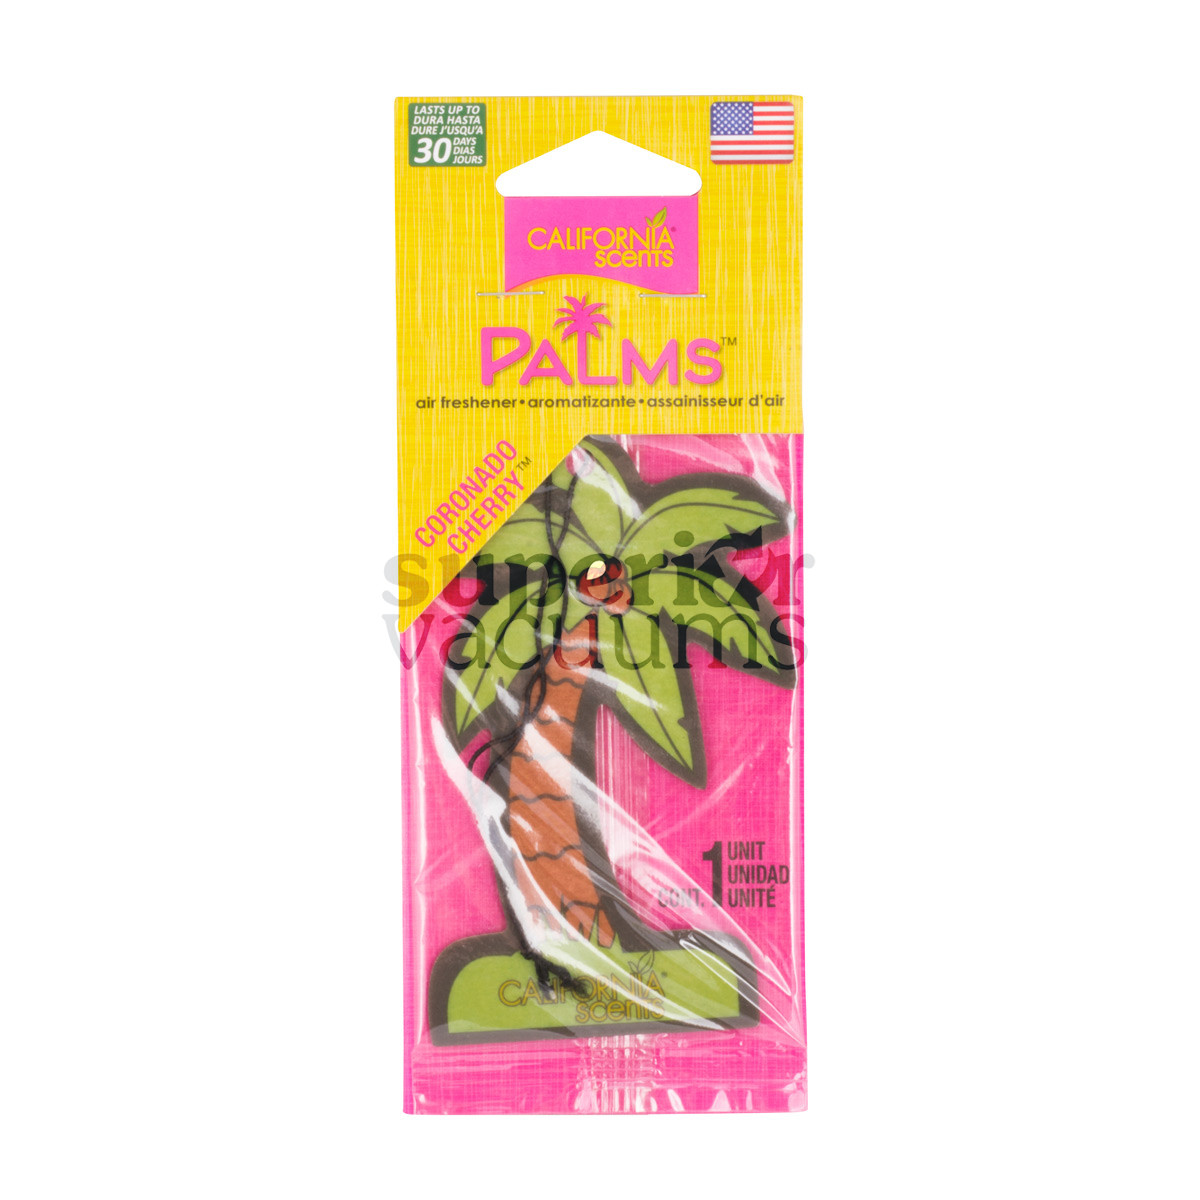 Scents Hang Out Air Freshener Cherry